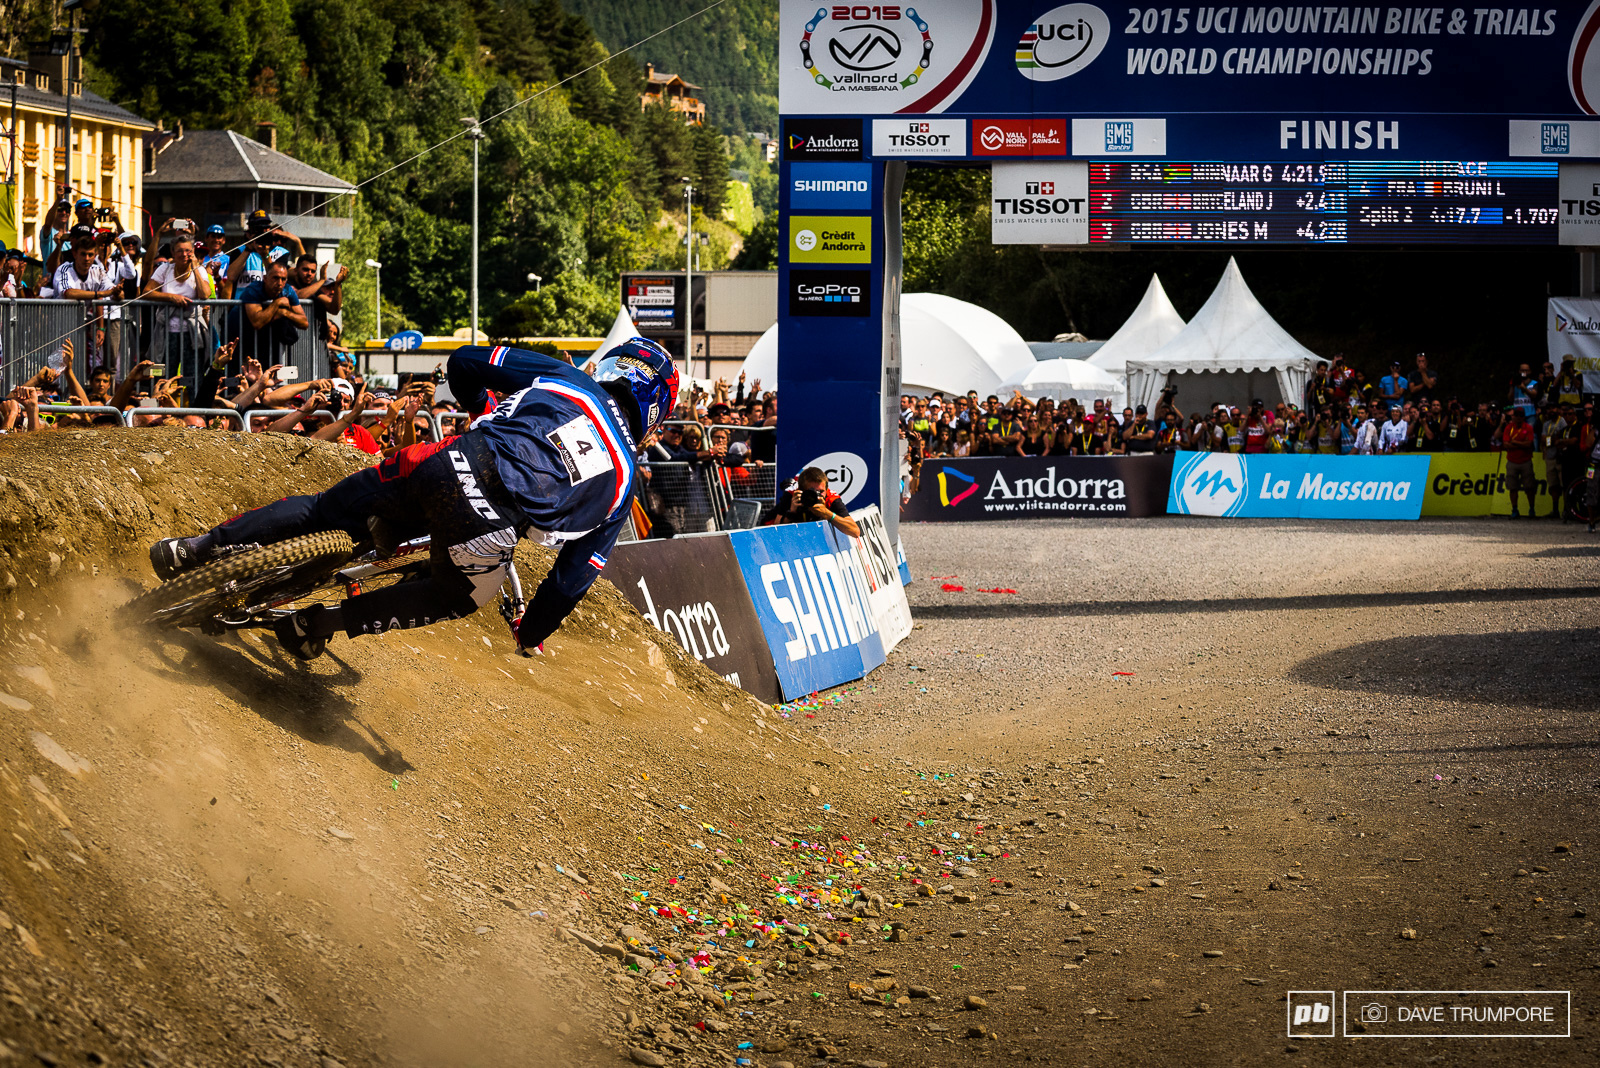 Up at all the splits and only a few meters to go in Andorra.